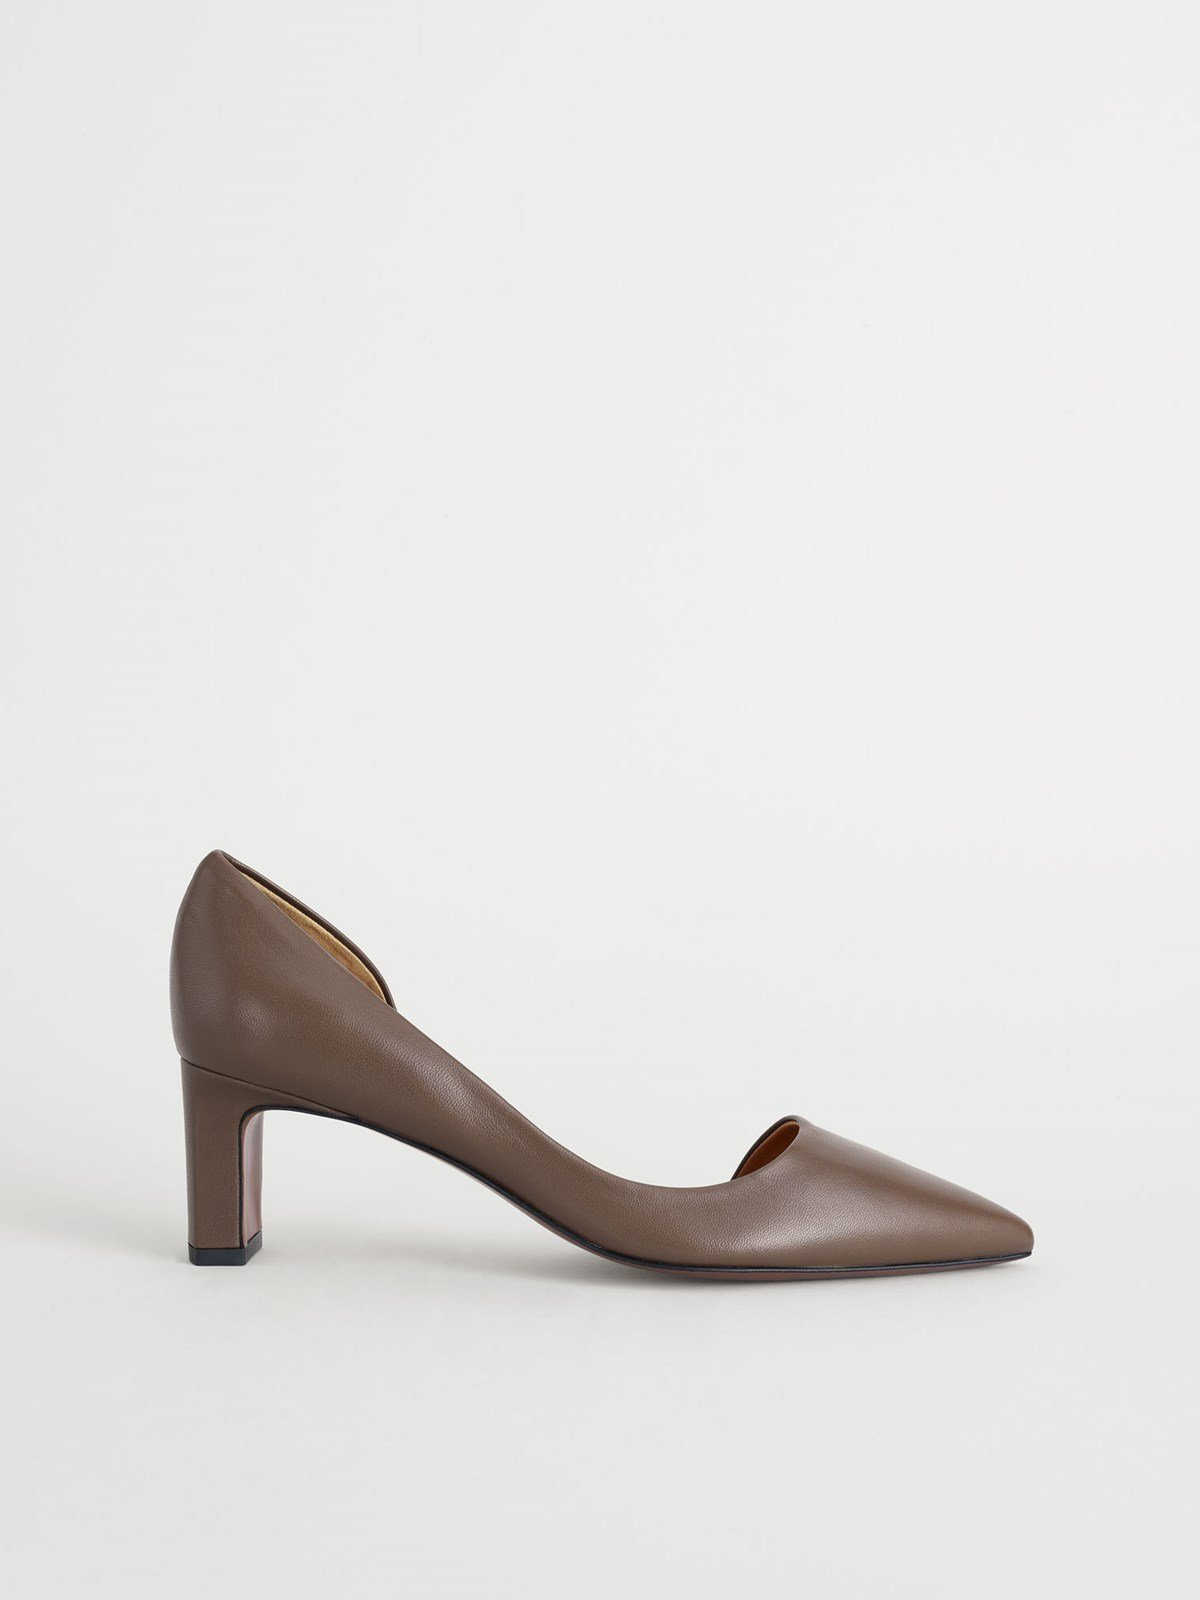 Carmiano Khaki Brown Pumps